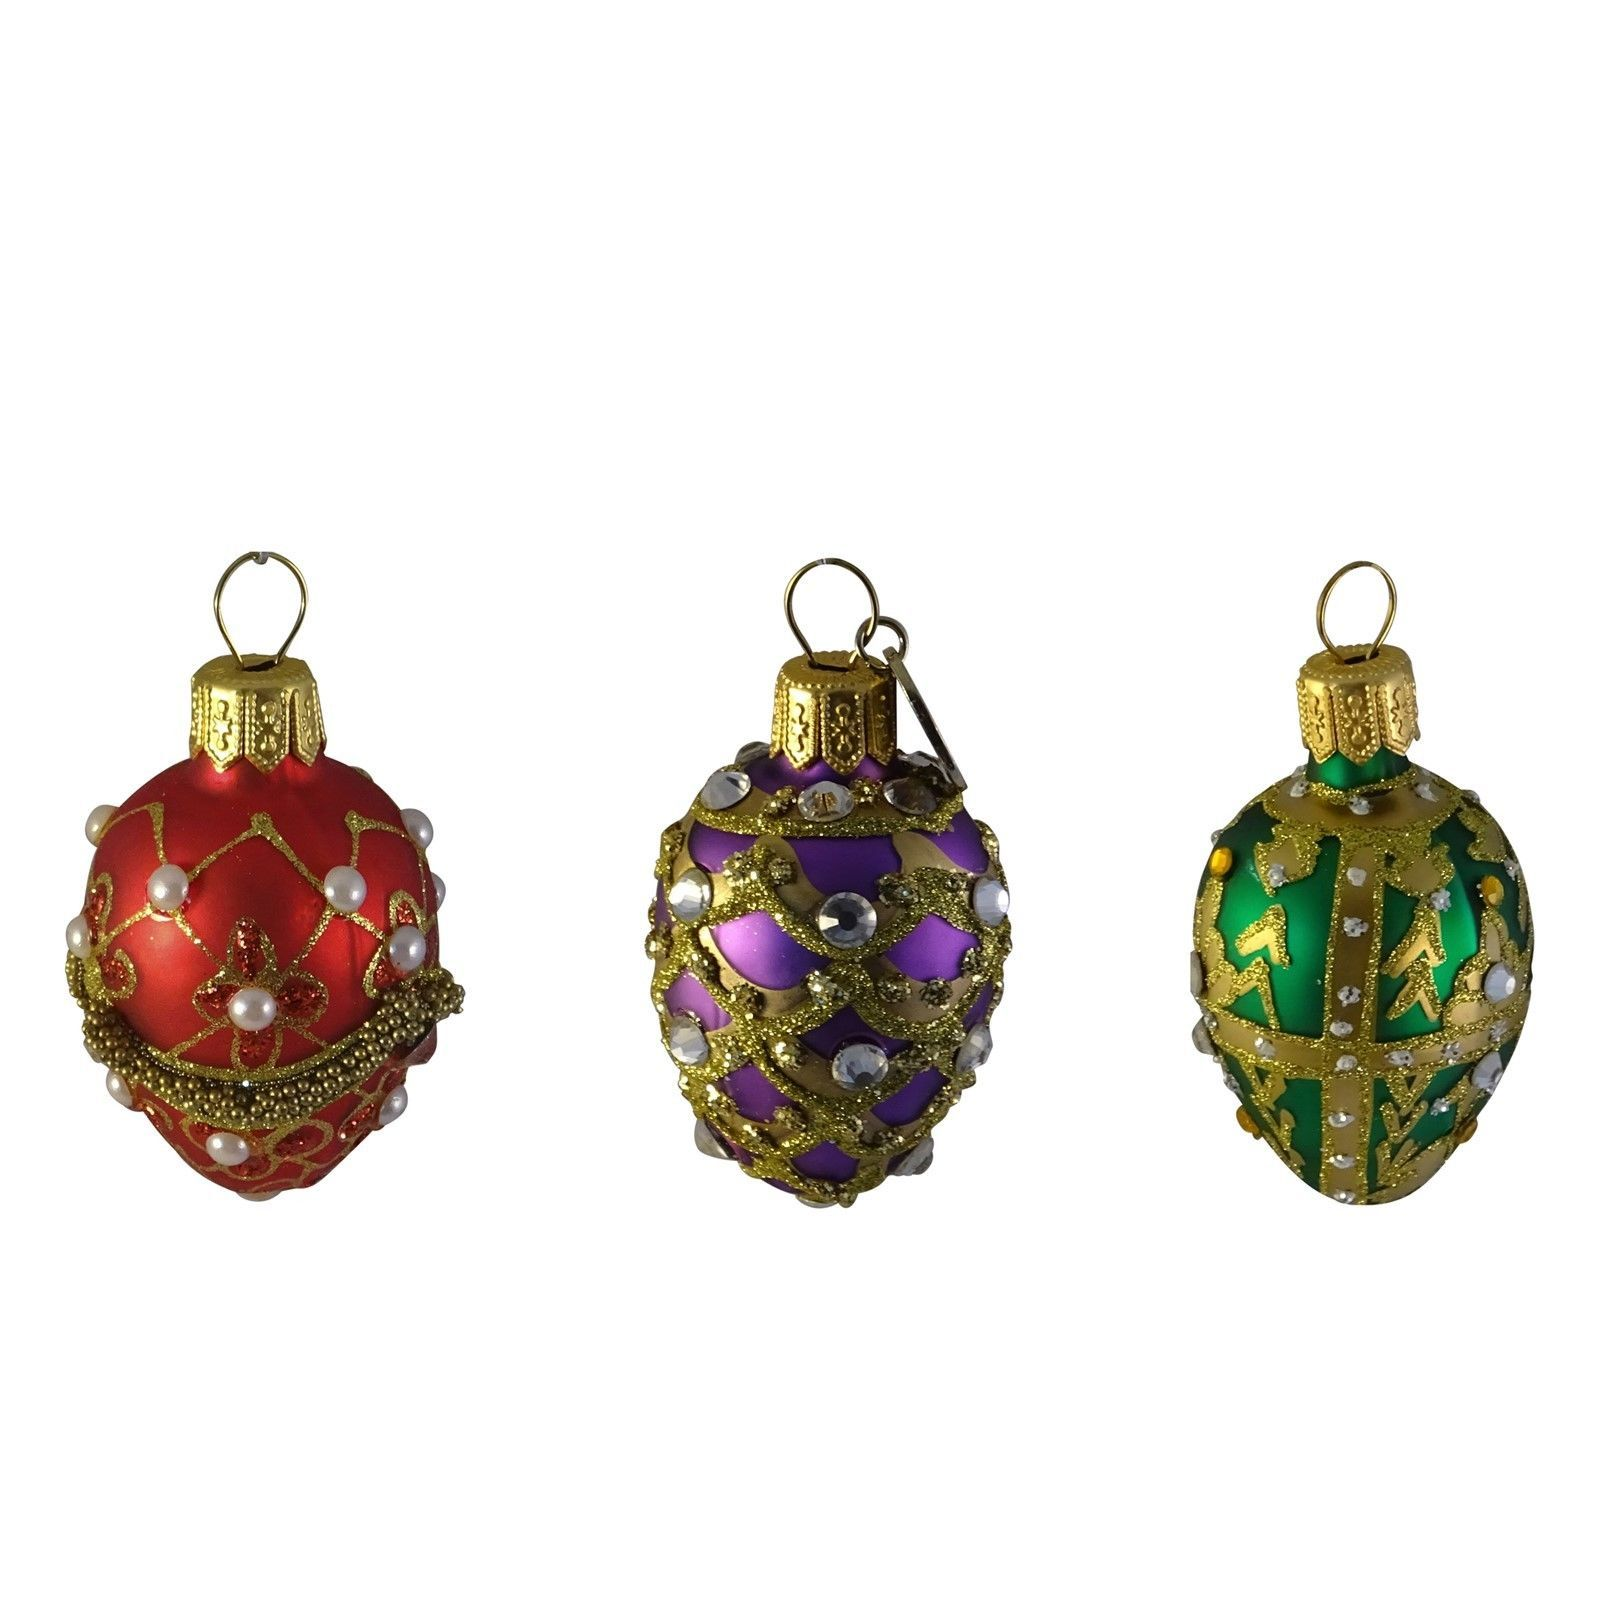 Bejeweled Egg Ornaments Hanging Holiday Easter Christmas Decorations Unicef